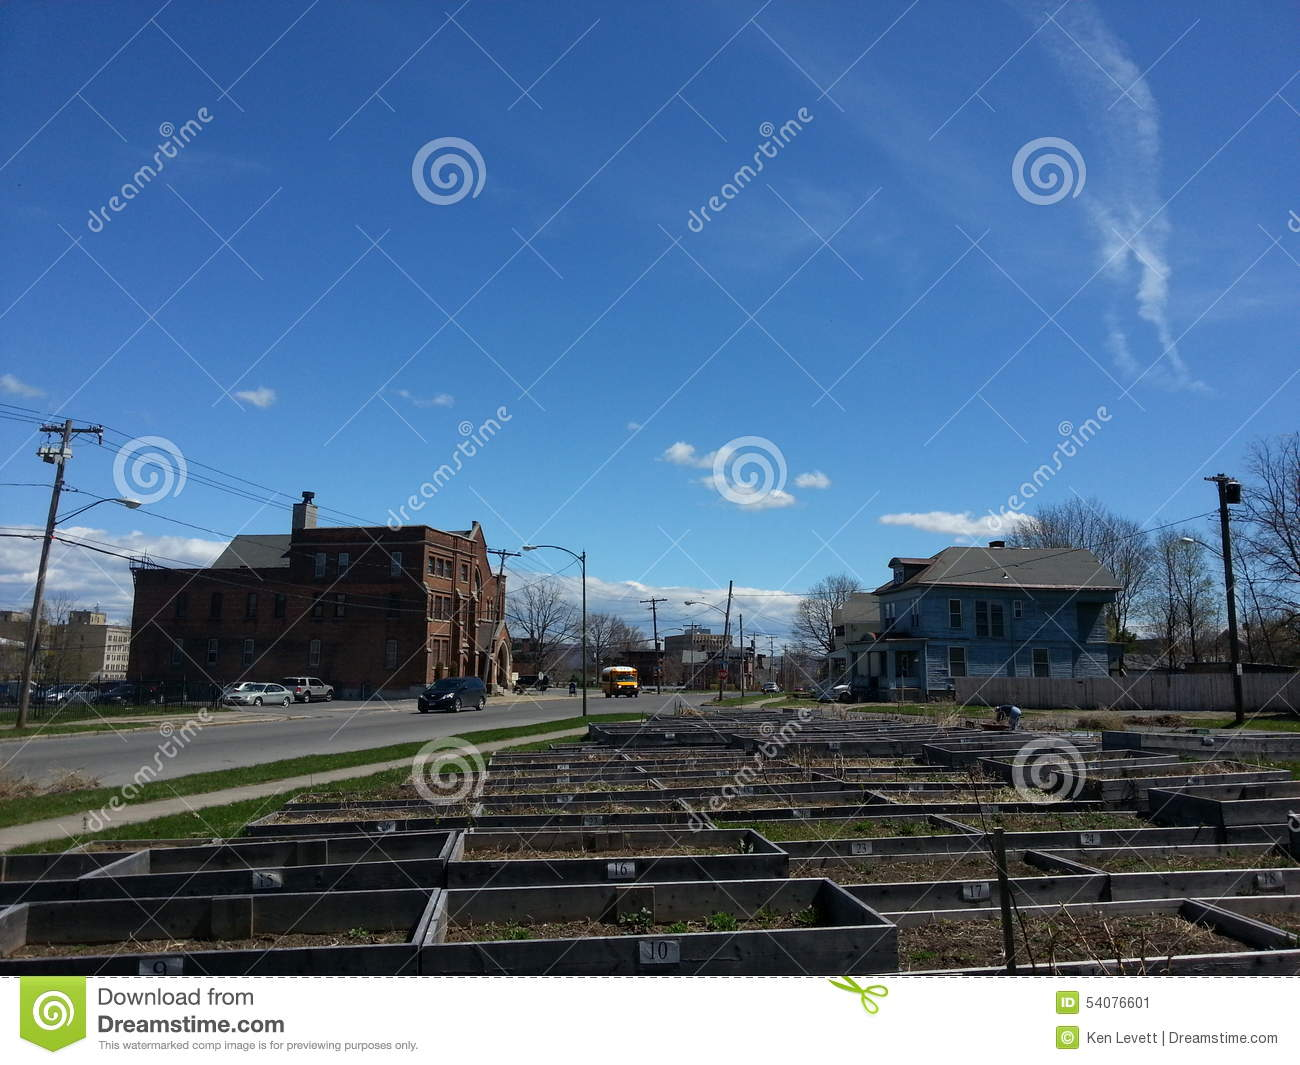 Stock Photo: Community garden: dreamstime.com/stock-photo-community-garden-park-avenue-utica-ny...